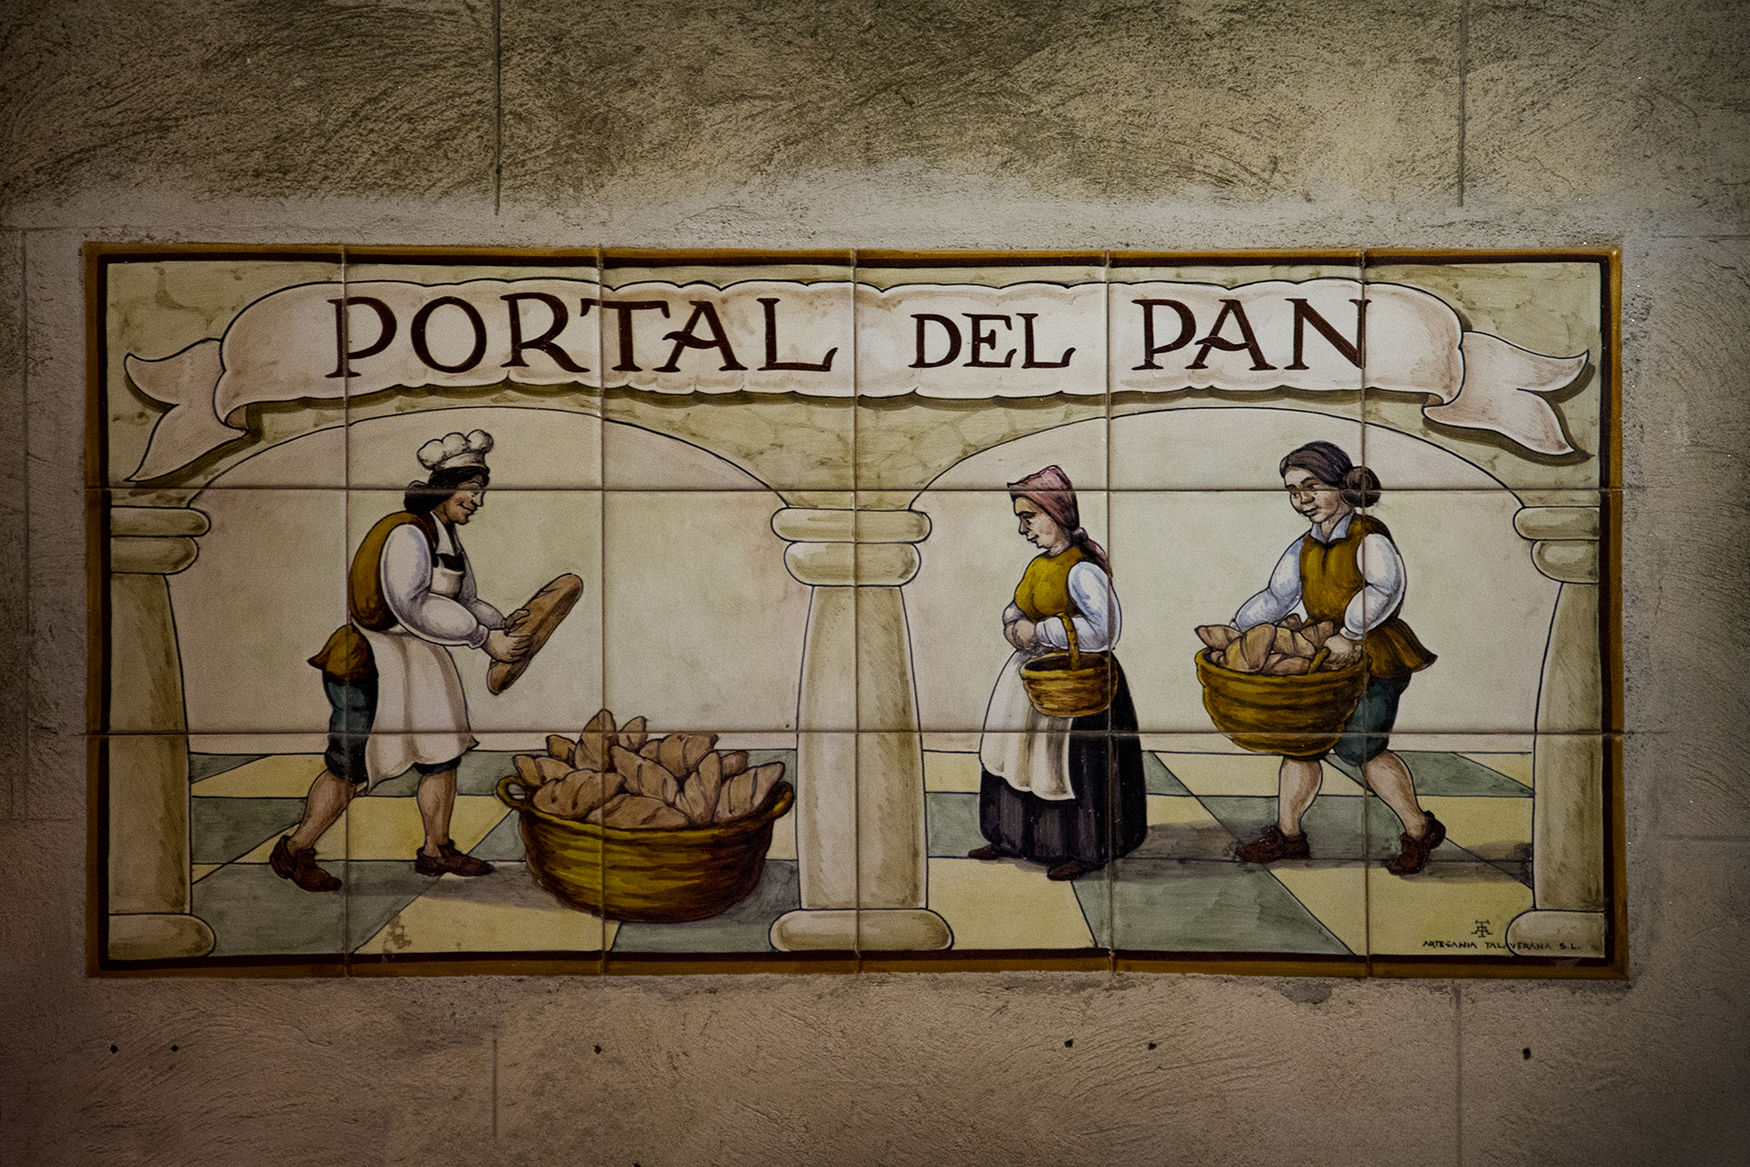 Portal Del Pan Travel Photography Trujillo, Caceres Beautiful Image Painted Image Text Travel Destinations Turism